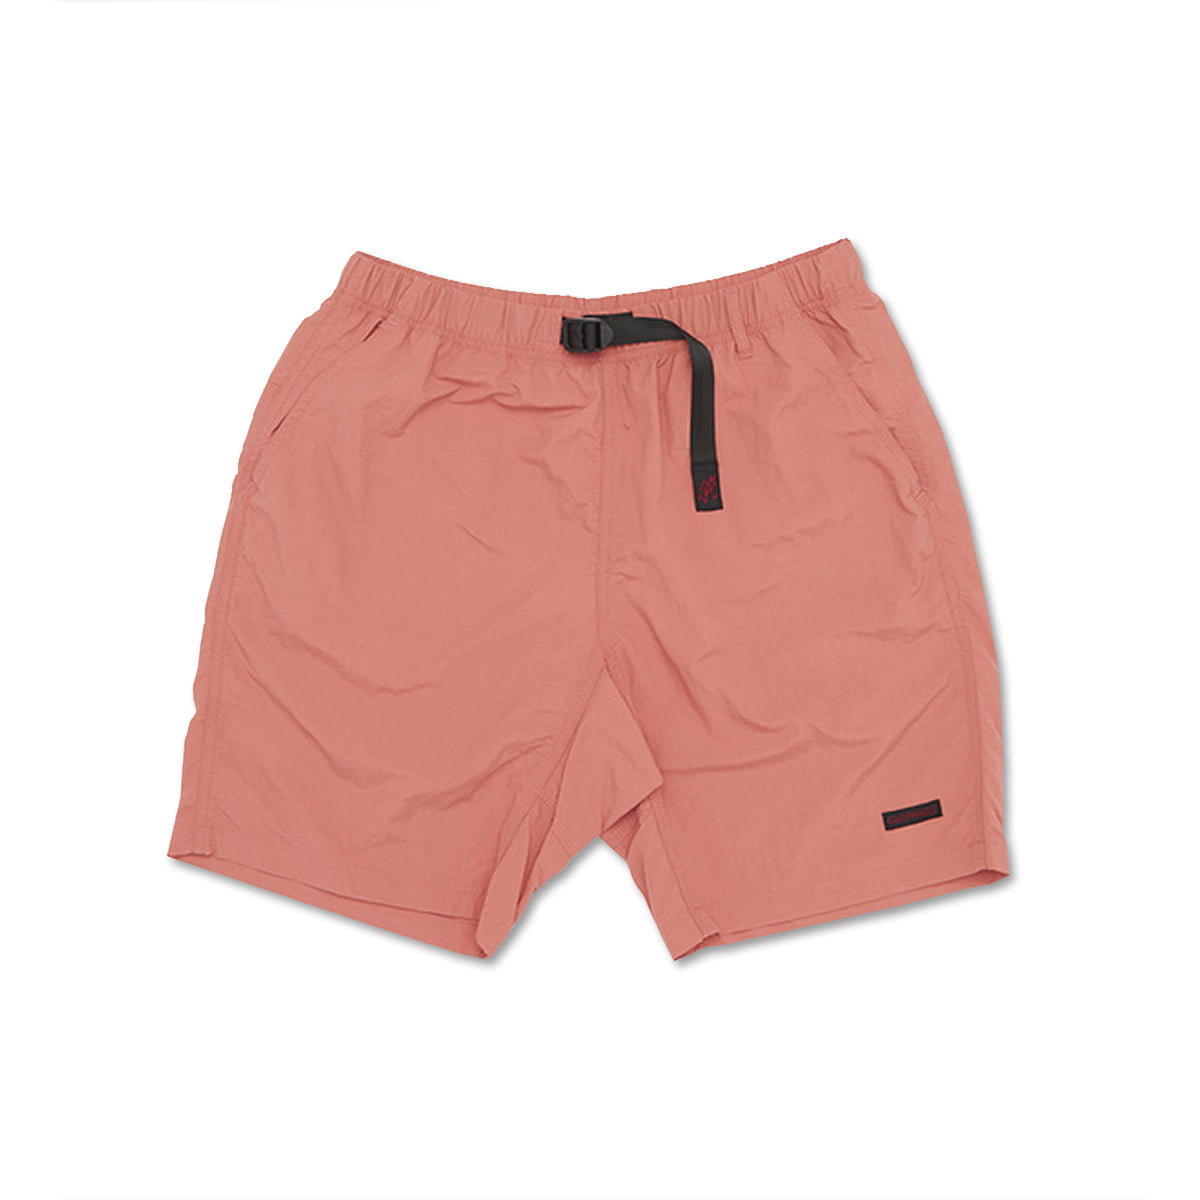 [GRAMICCI] SHELL PACKABLE SHORTS 'PLUM'